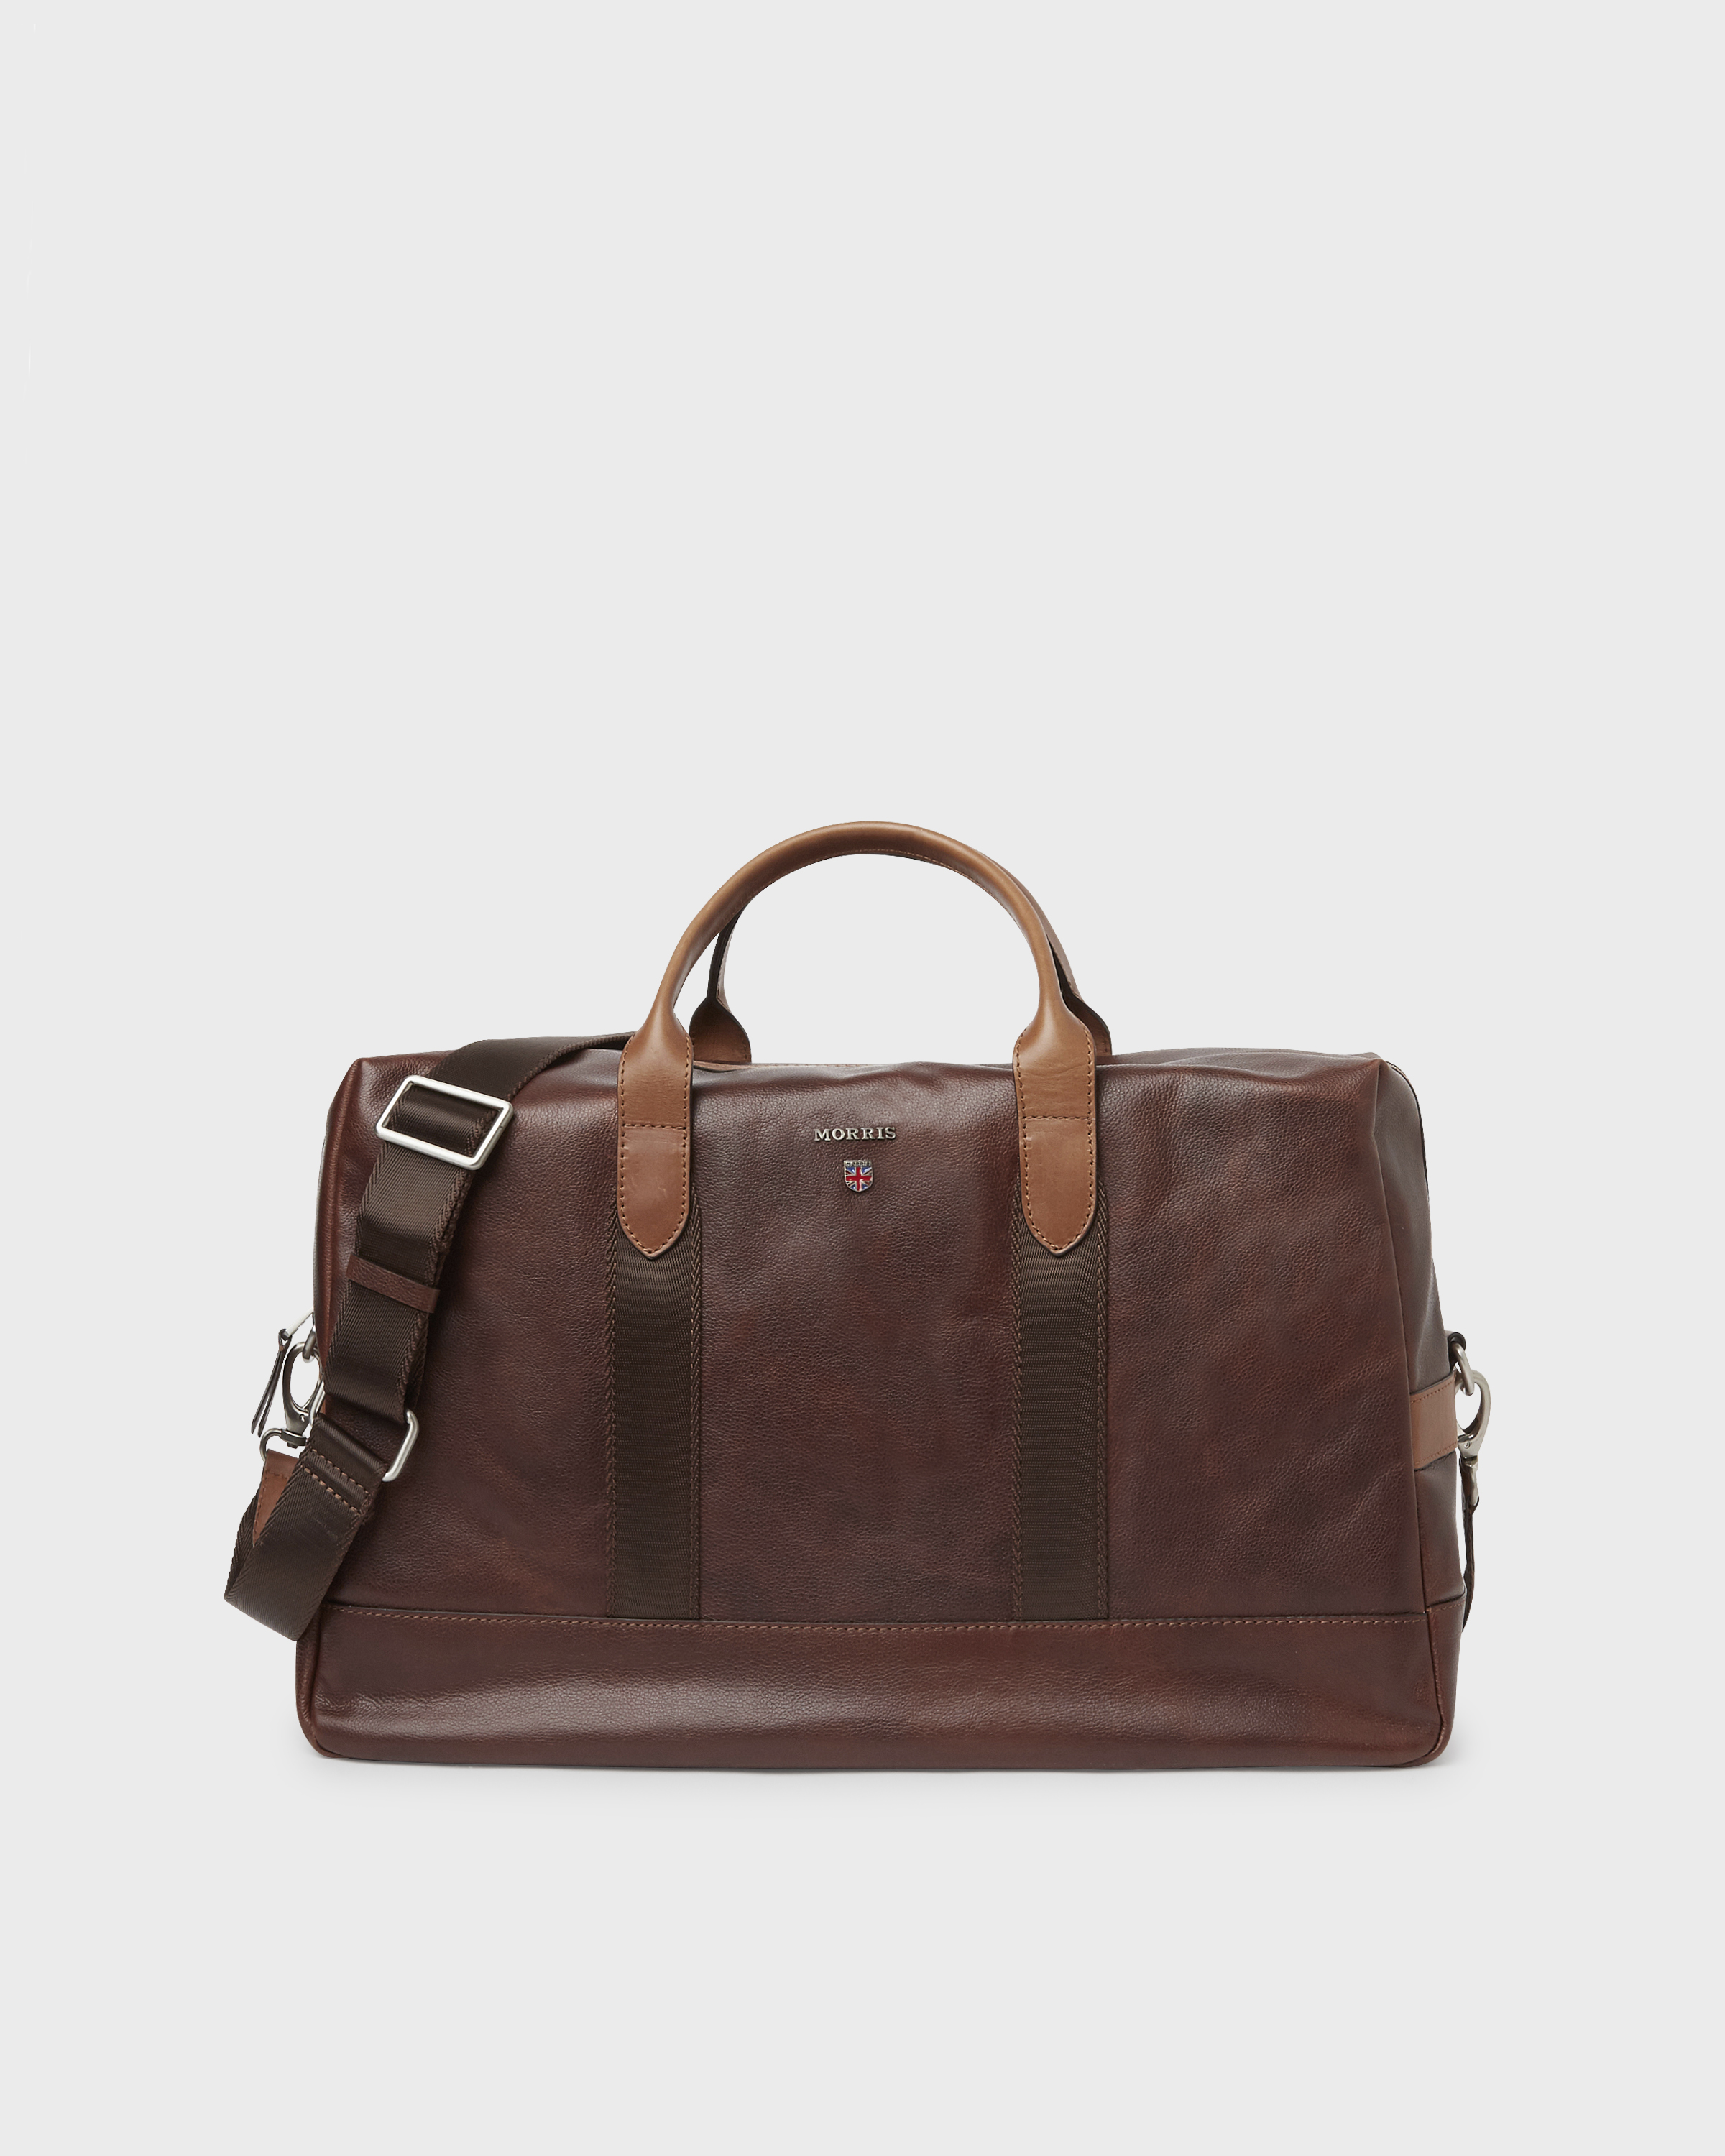 Buy Morris bags at The swedish leather brand